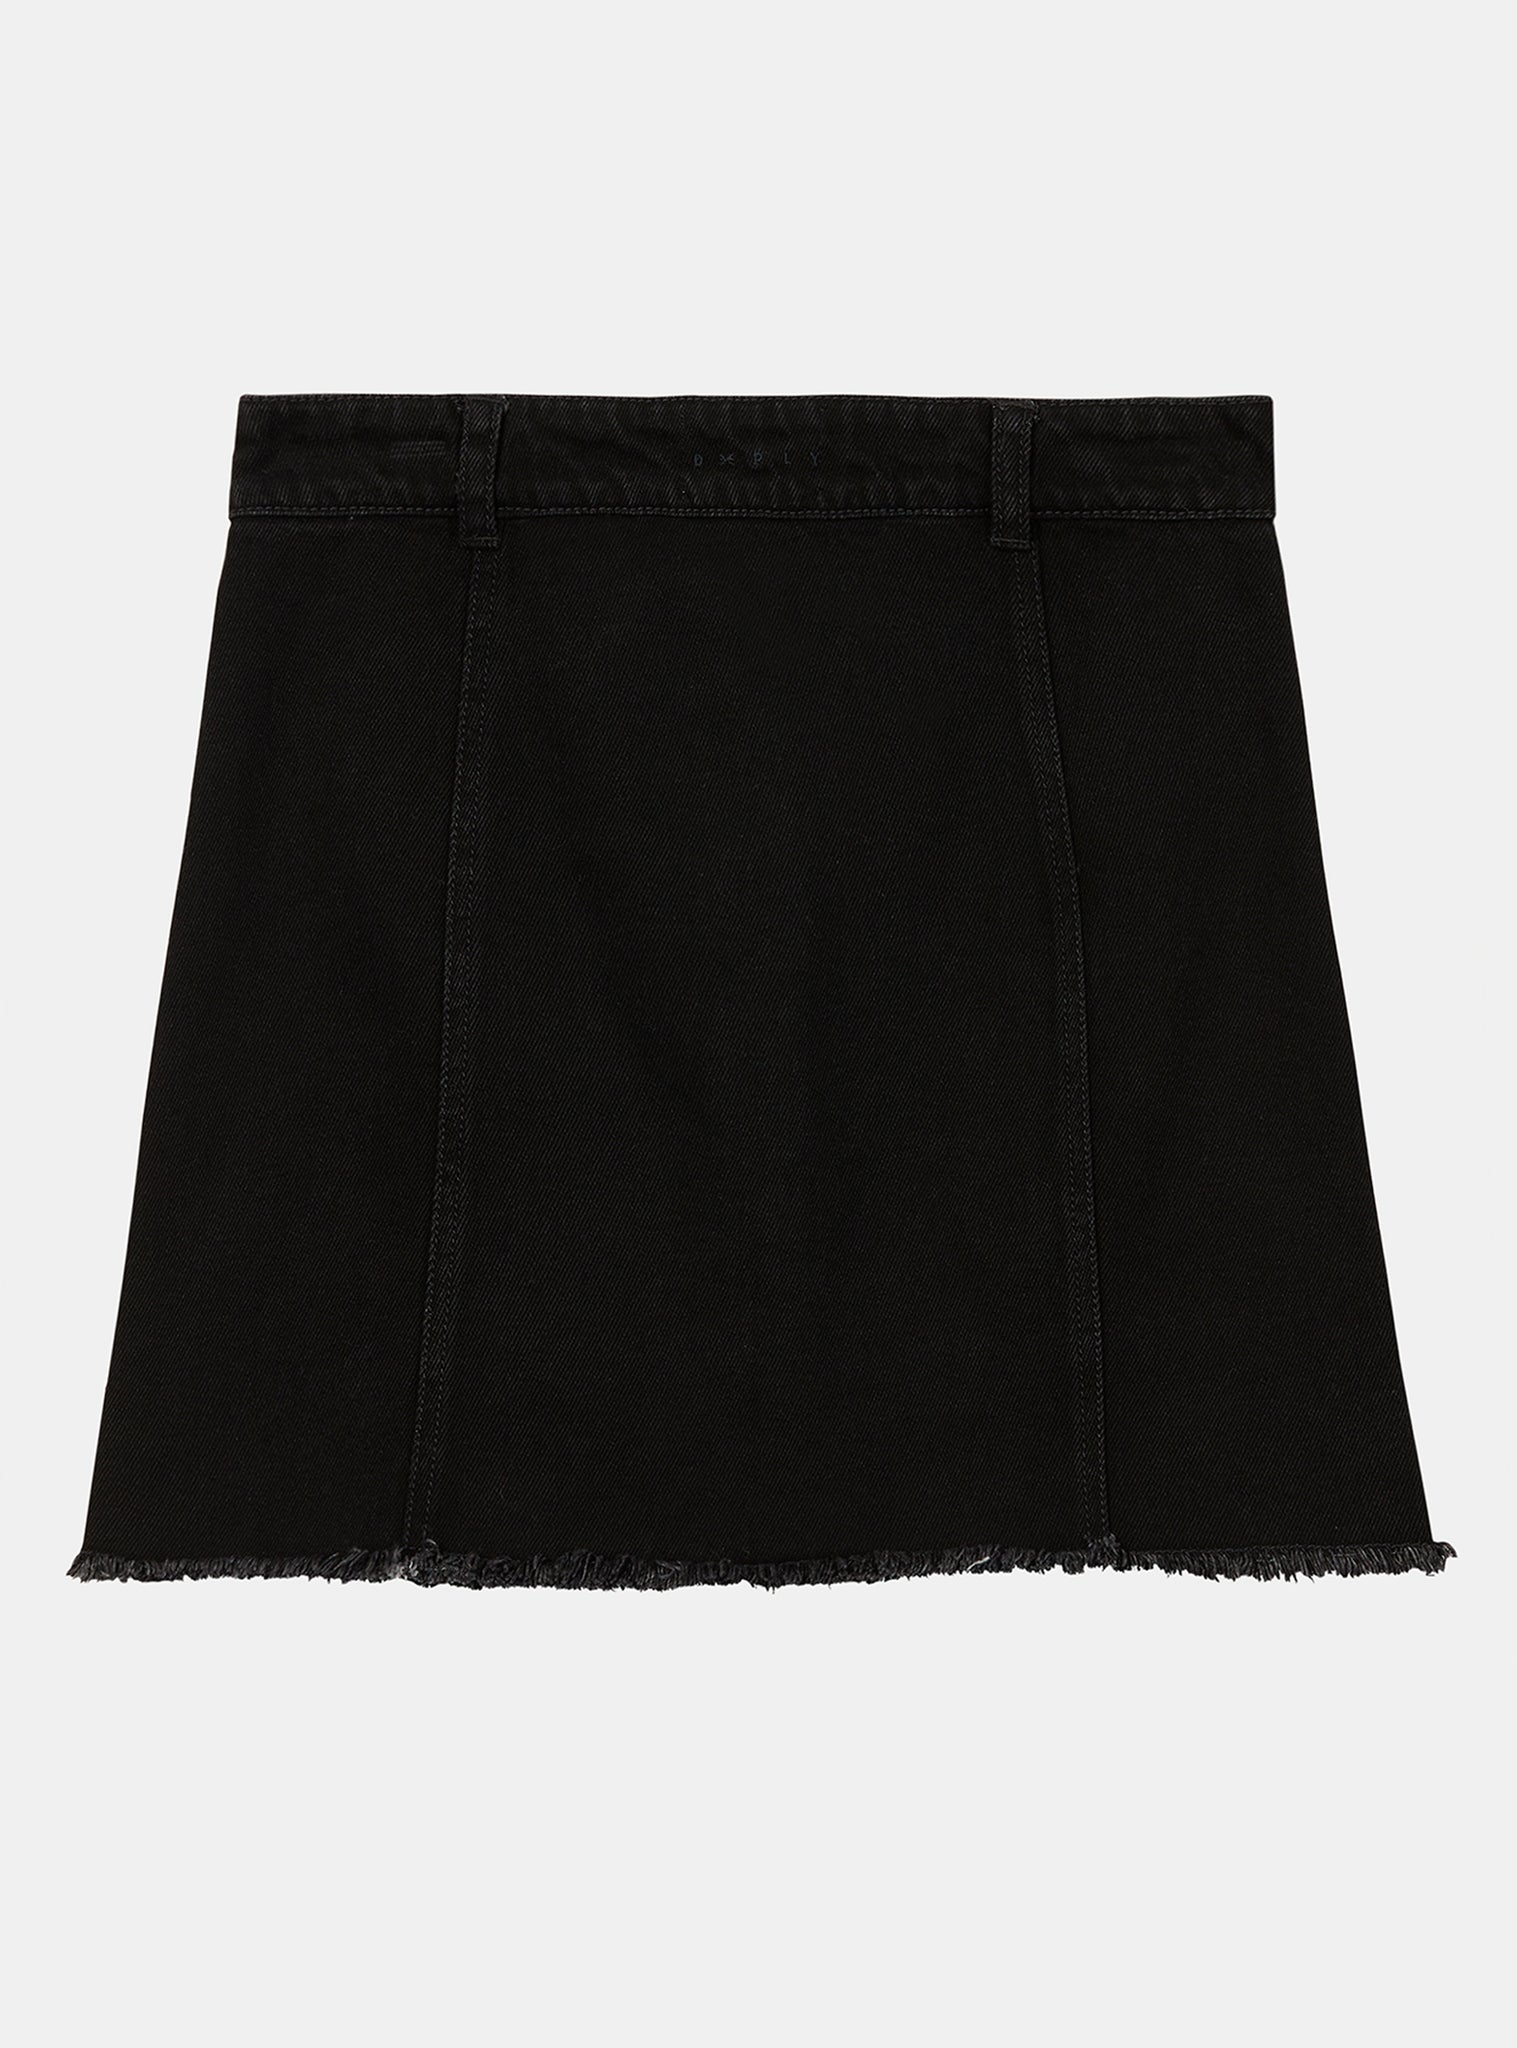 Map Skirt Black